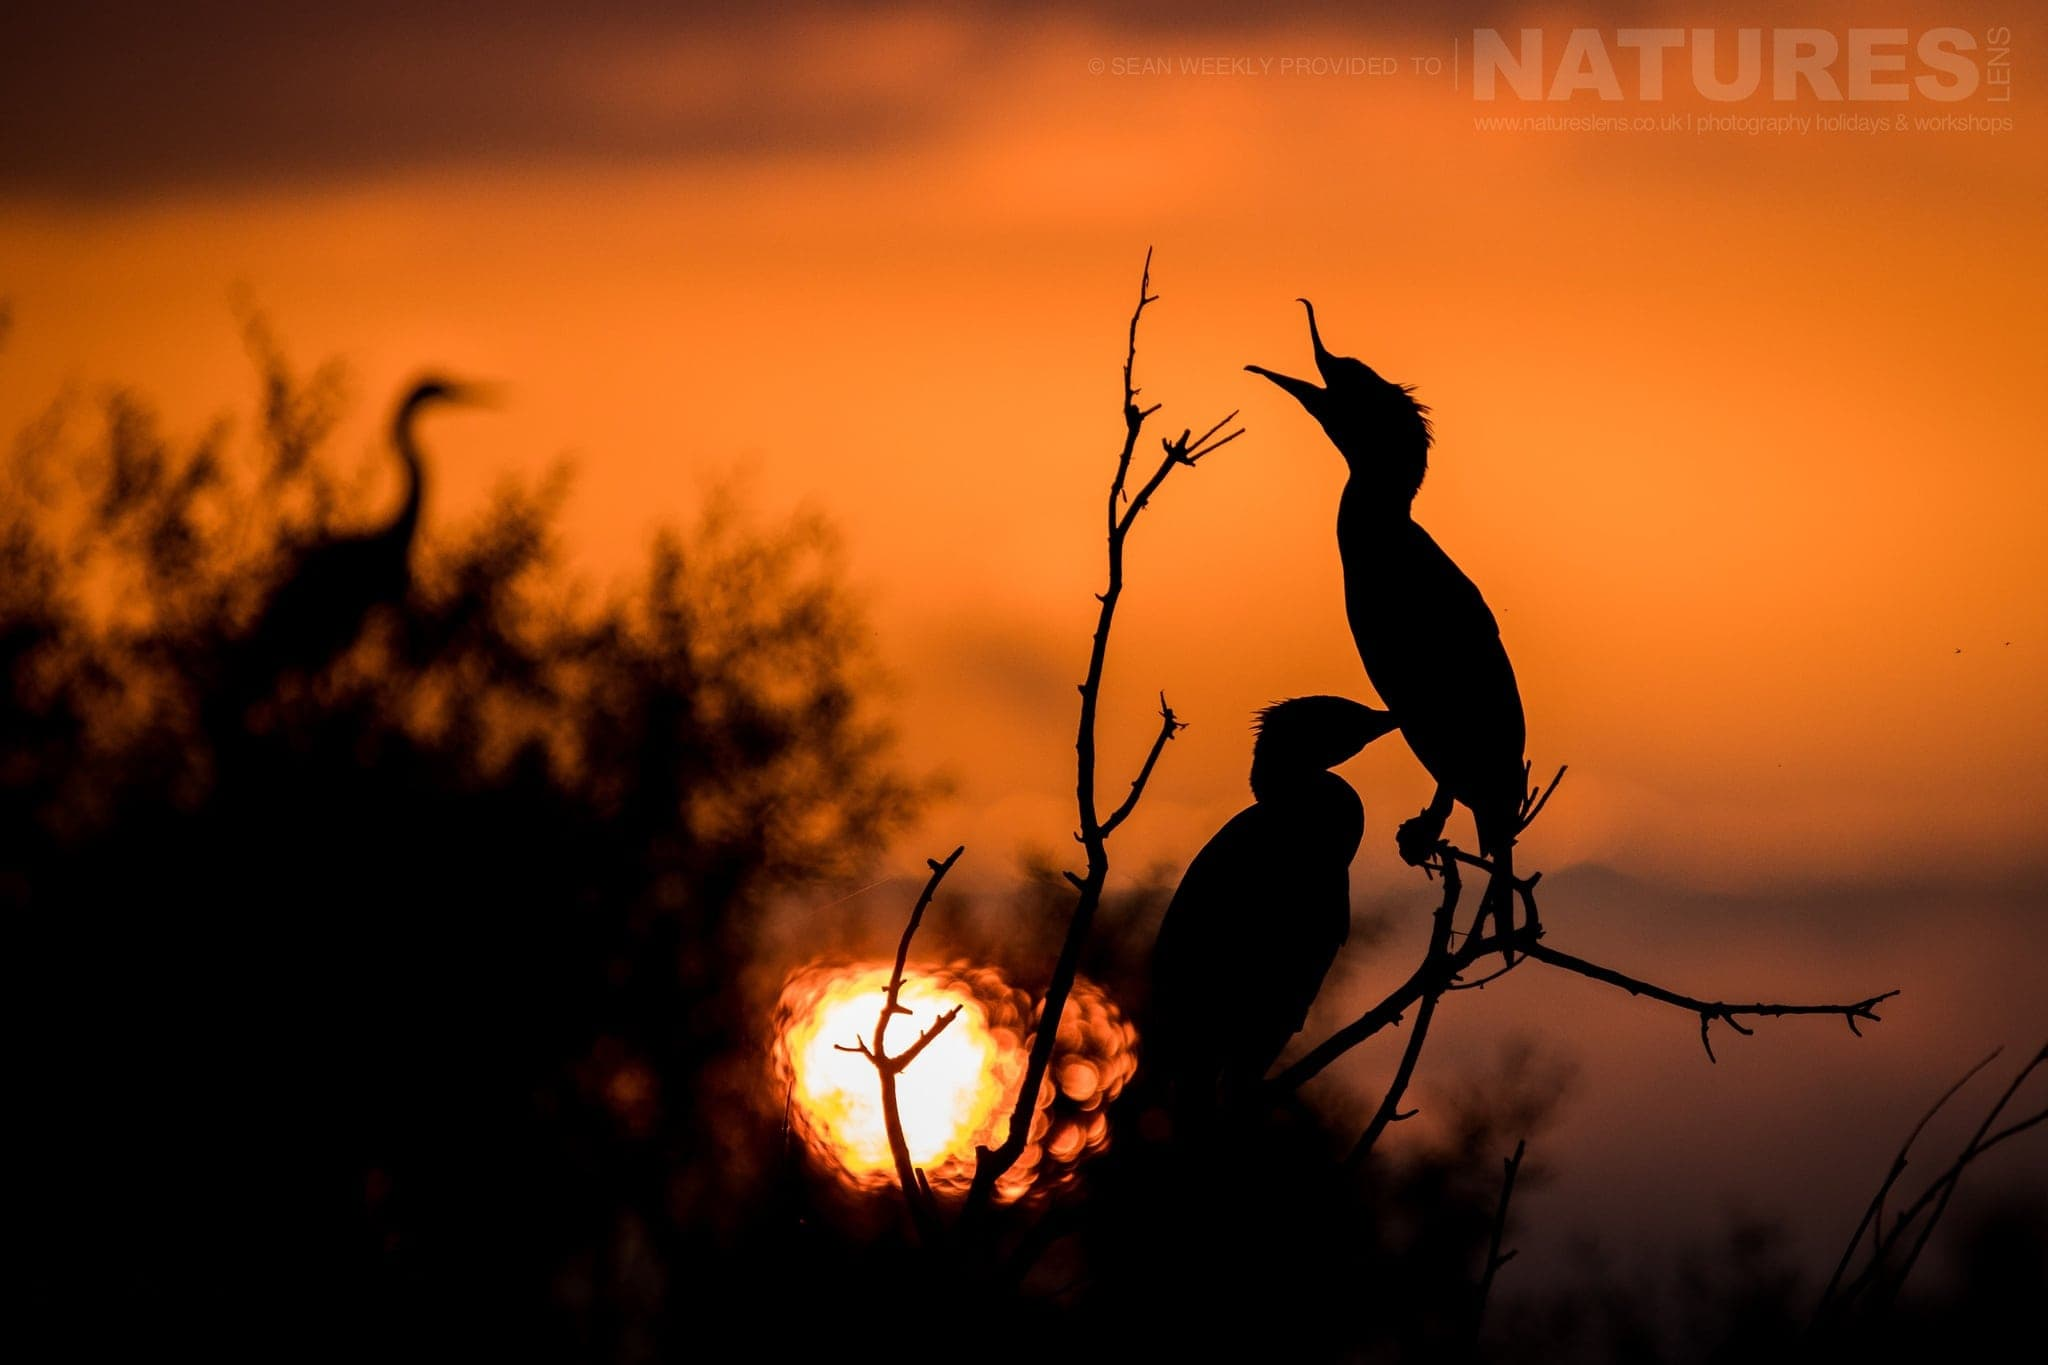 We Head Out Early To Lake Kerkini And Stay Out Late Capturing Bird Silhouettes   Photographed During The NaturesLens Spring Birds Of Lake Kerkini Photography Holiday